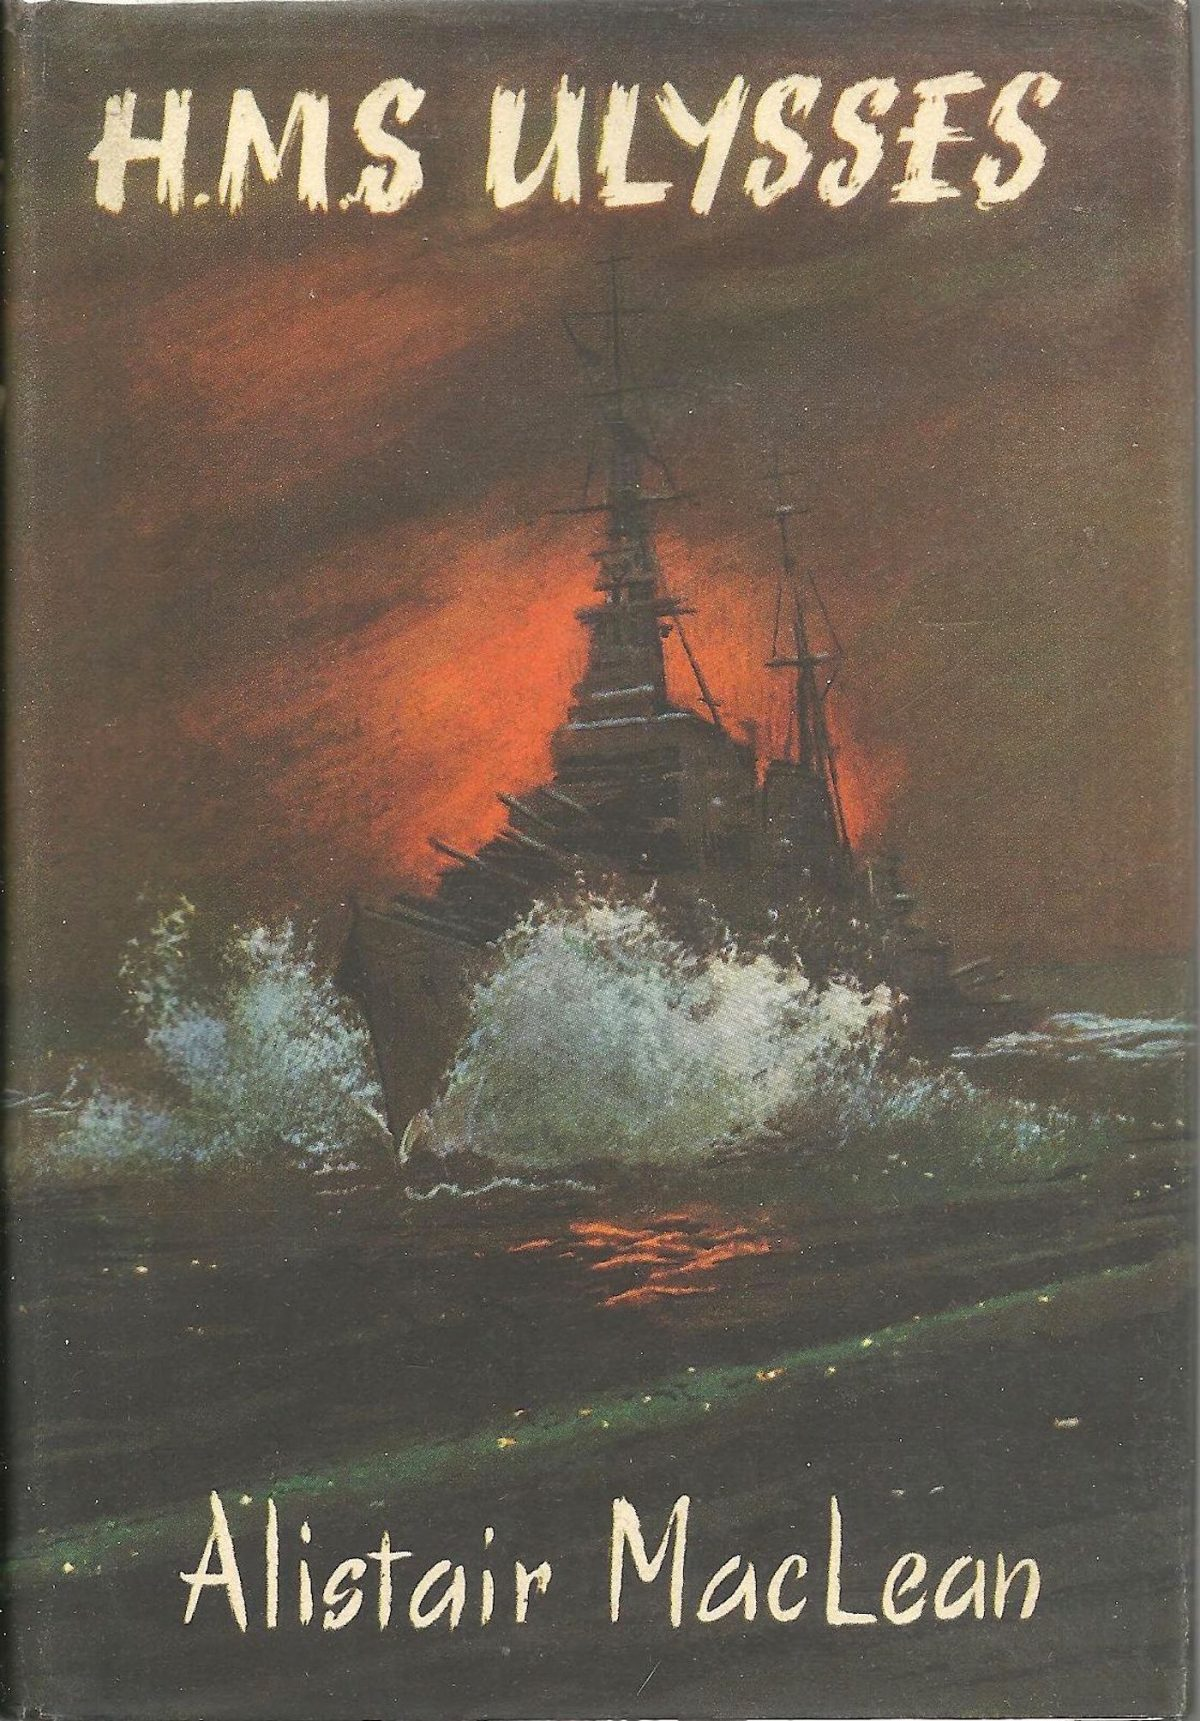 Alistair MacLean, HMS Ulysses, books, 1950s, writers